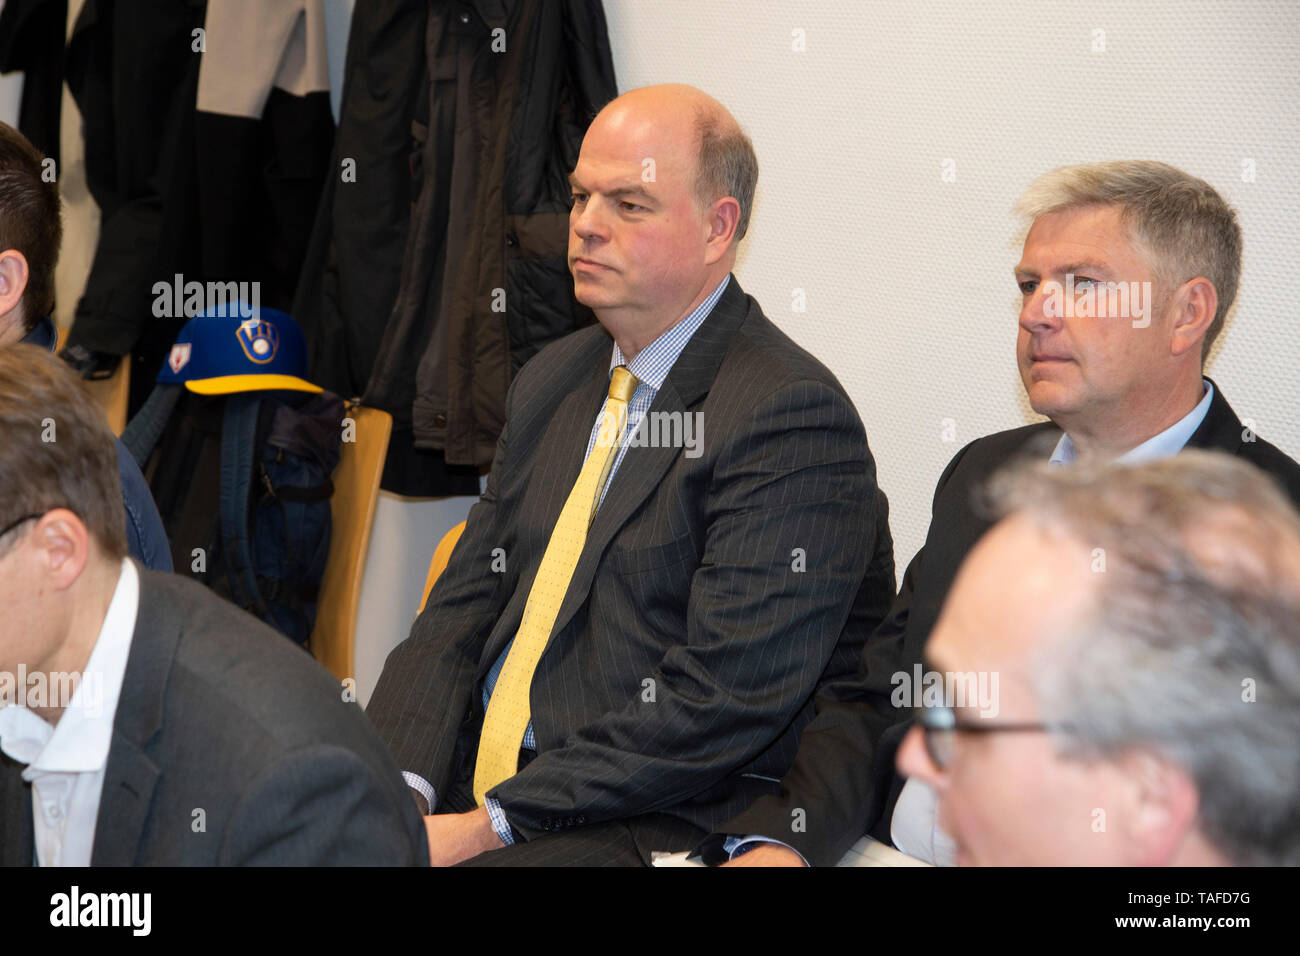 The invited as a witness Peter KOHL, son of Helmut Kohl, sitting room, proceedings by Maike Kohl-Richter versus author Heribert Schwan and the Spiegel Verlag on the book VERMAECHTNIS, whether more passages should be banned and the amount of profits achieved on 22.05.2019 in the district court Koeln,   usage worldwide - Stock Image